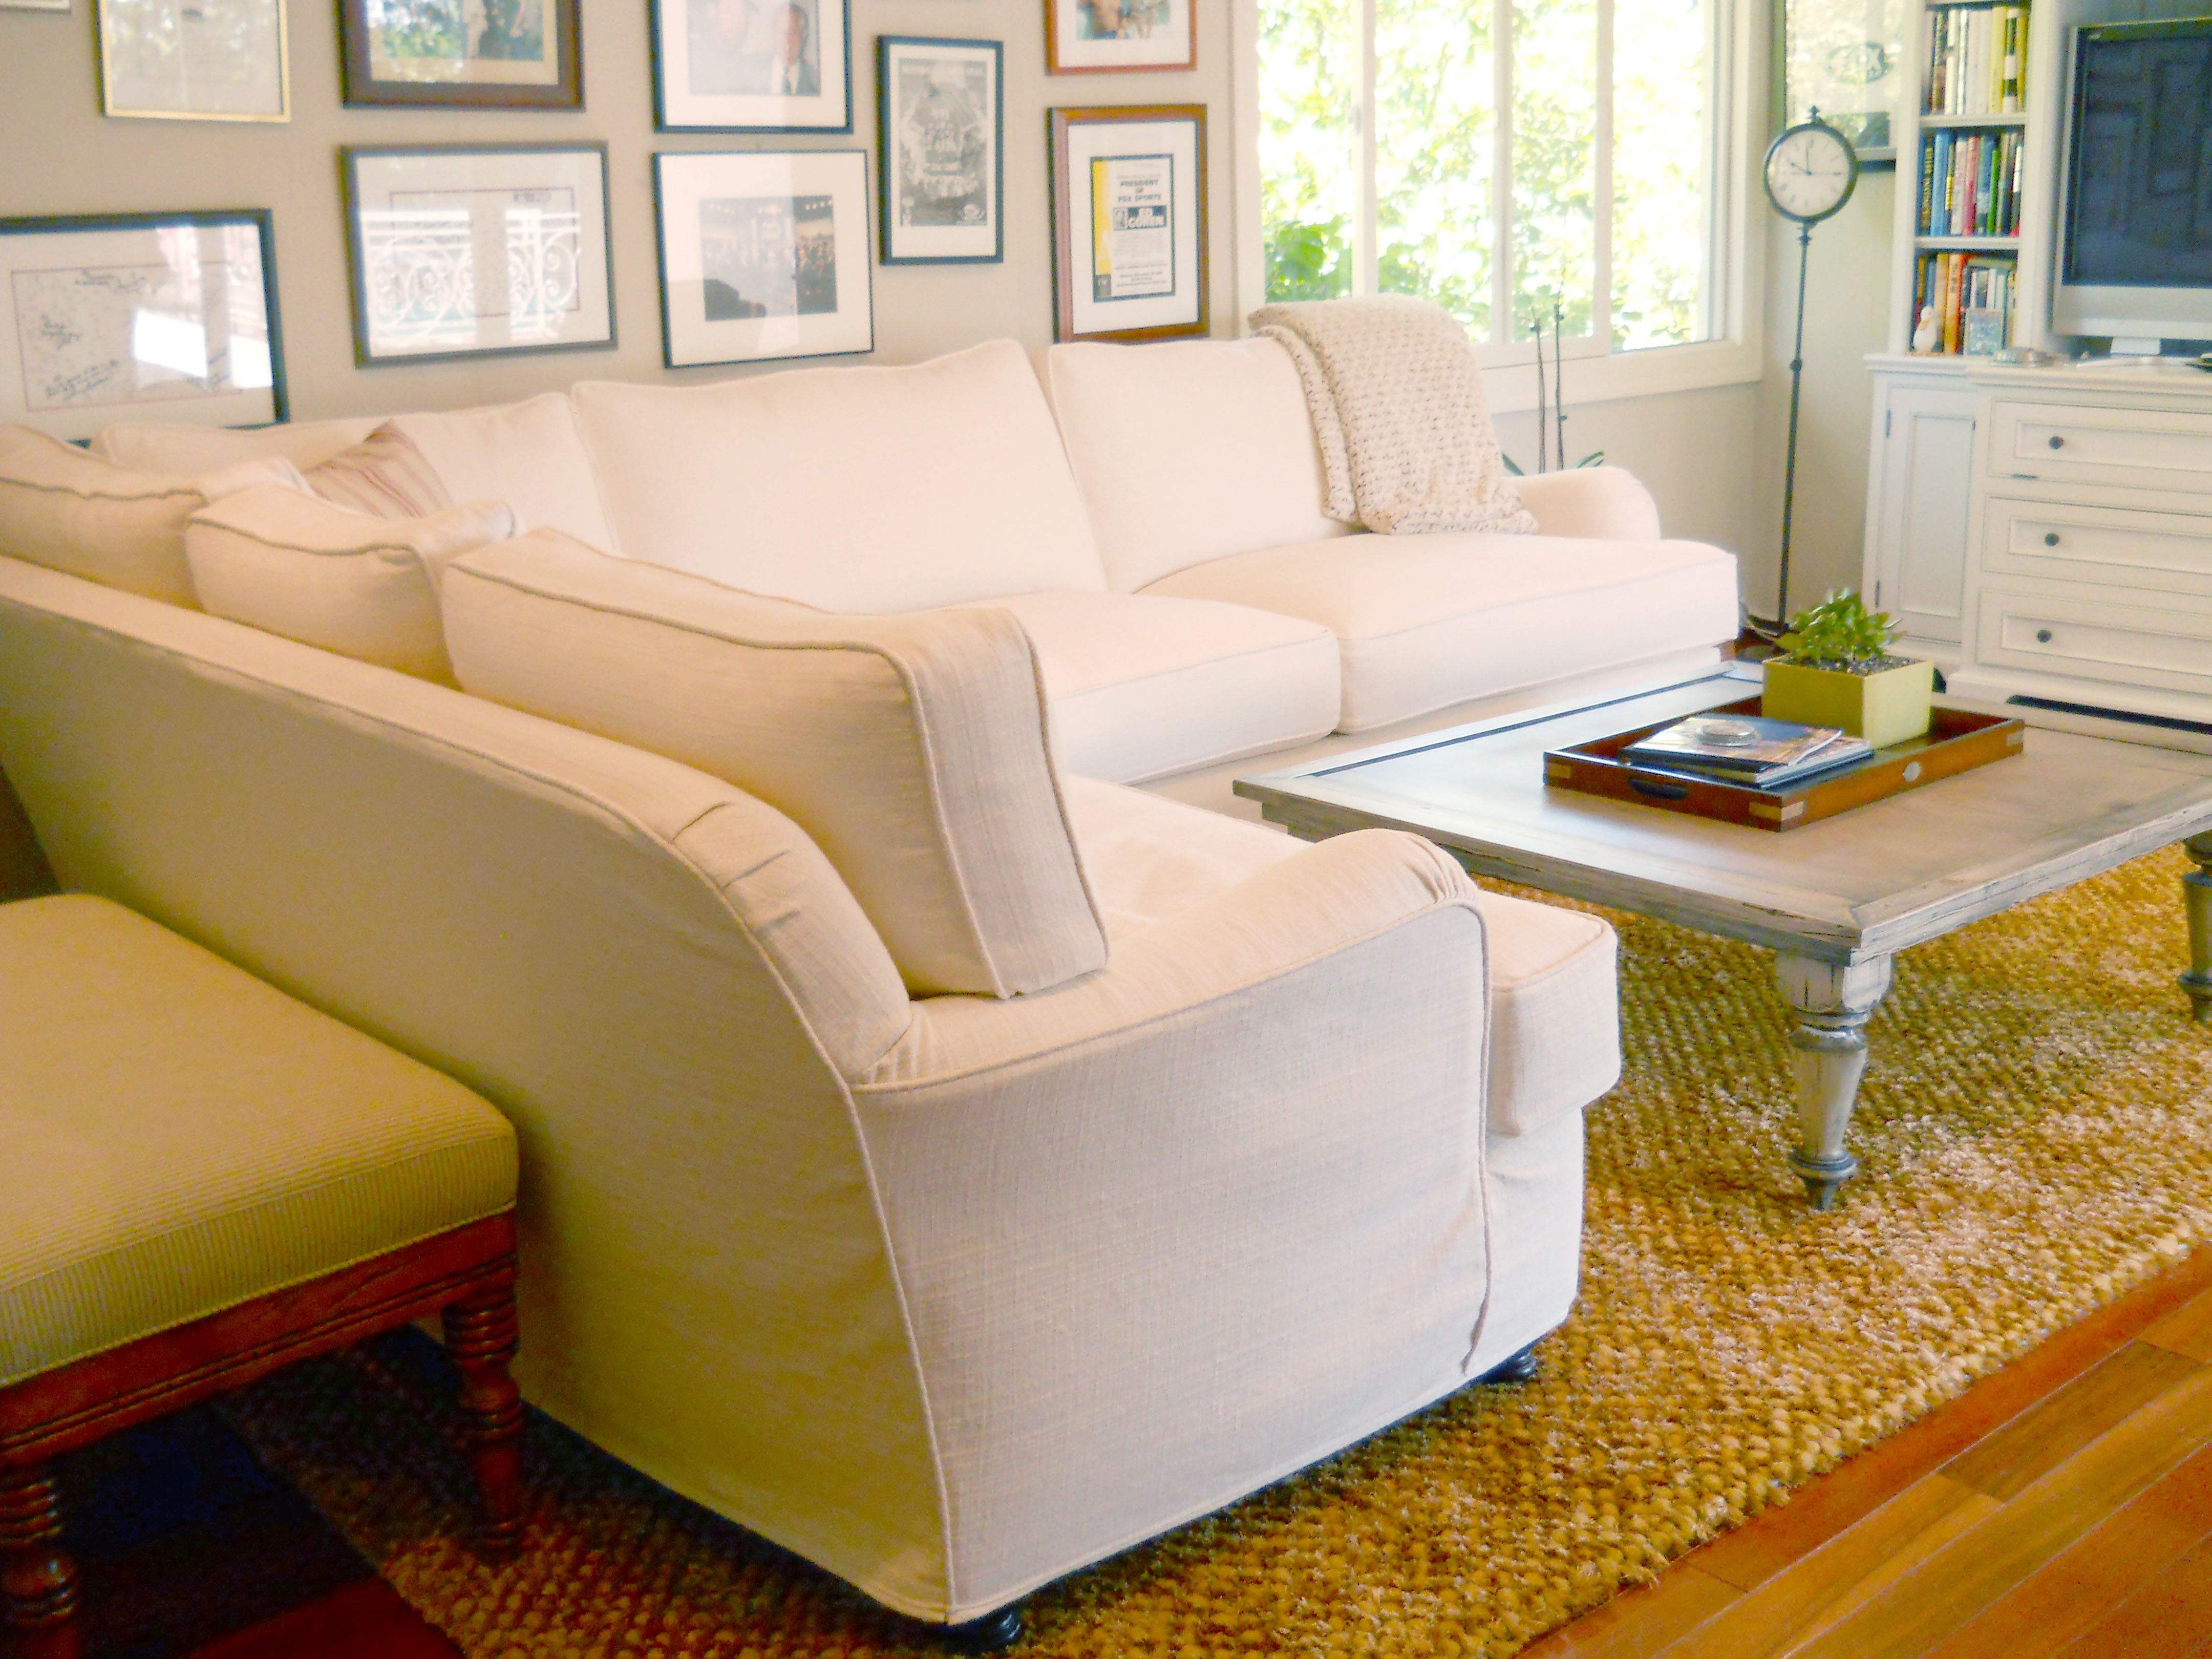 Quatrine Ivory Slipcovered Modern Milan Sectional And Distressed pertaining to Quatrine Sectional Sofas (Image 6 of 10)